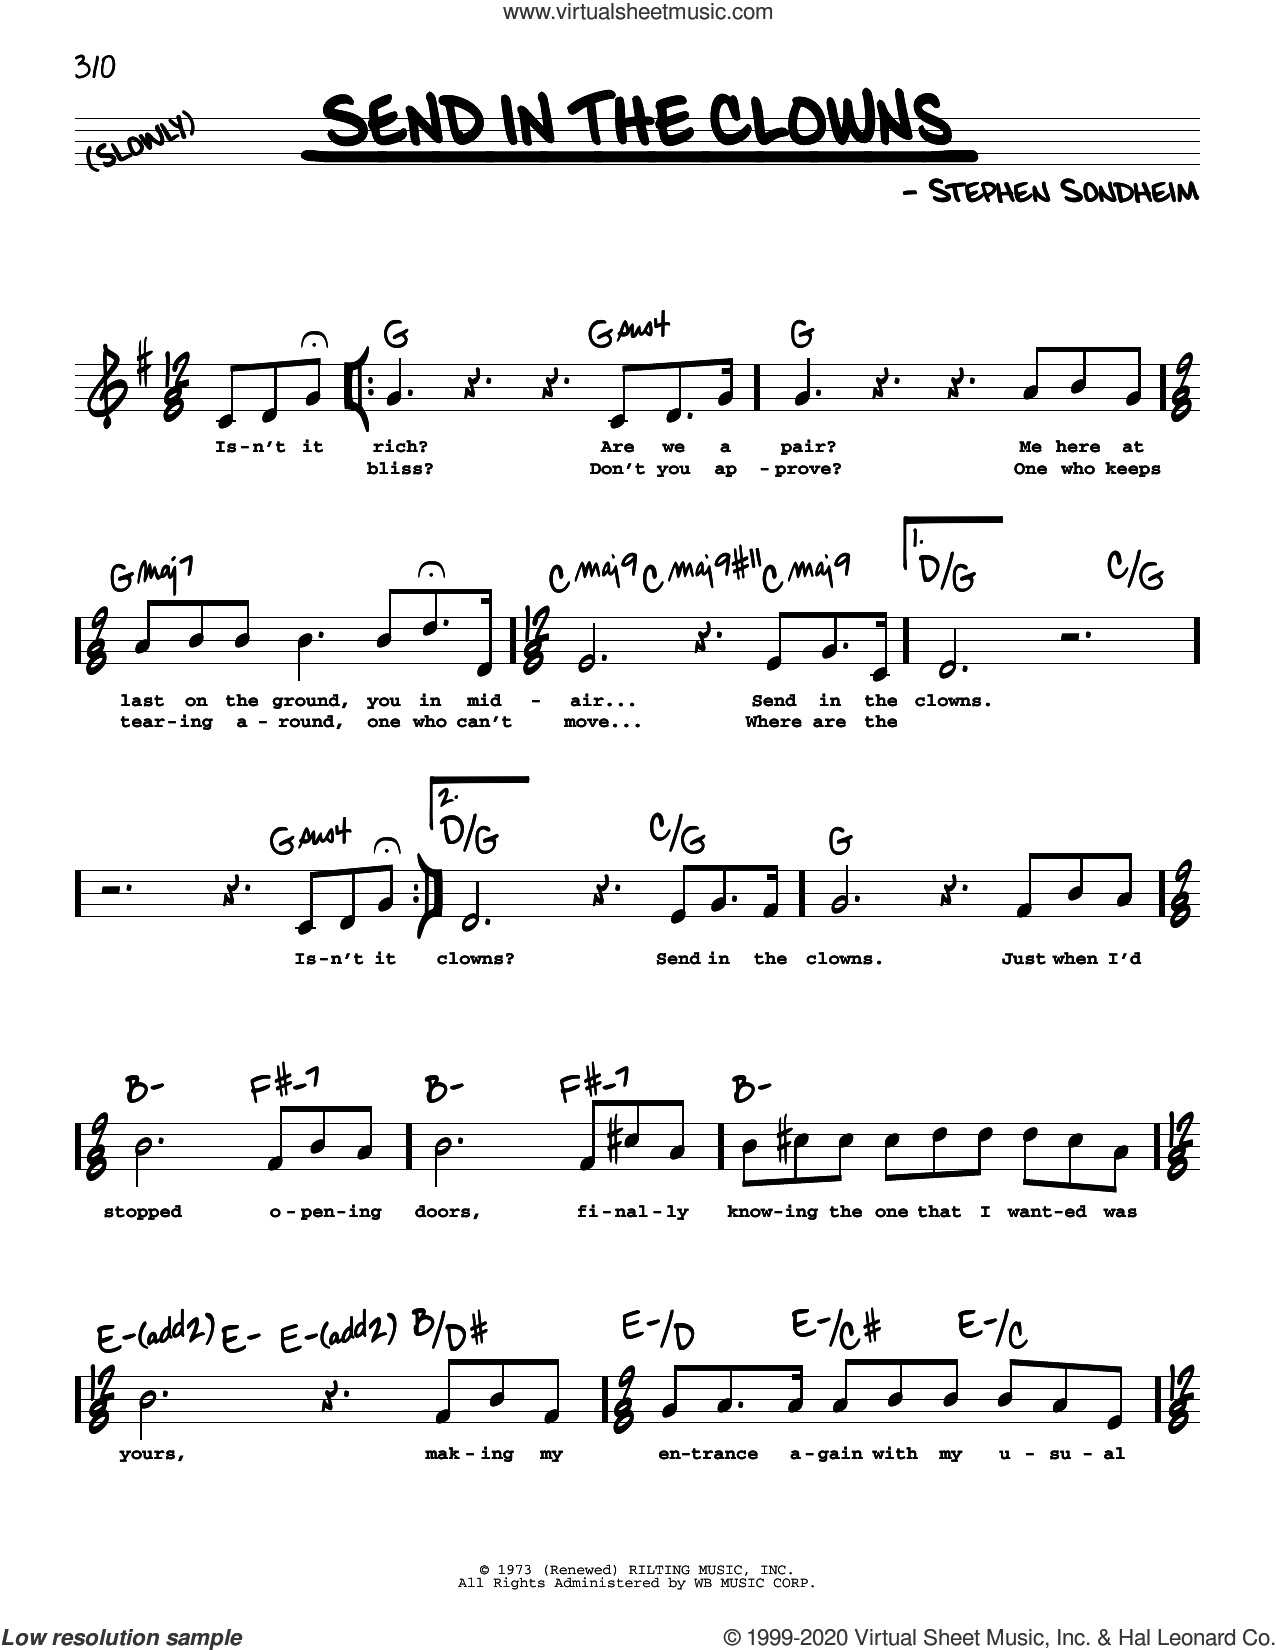 Send In The Clowns (High Voice) sheet music for voice and other instruments (high voice) by Stephen Sondheim, intermediate skill level